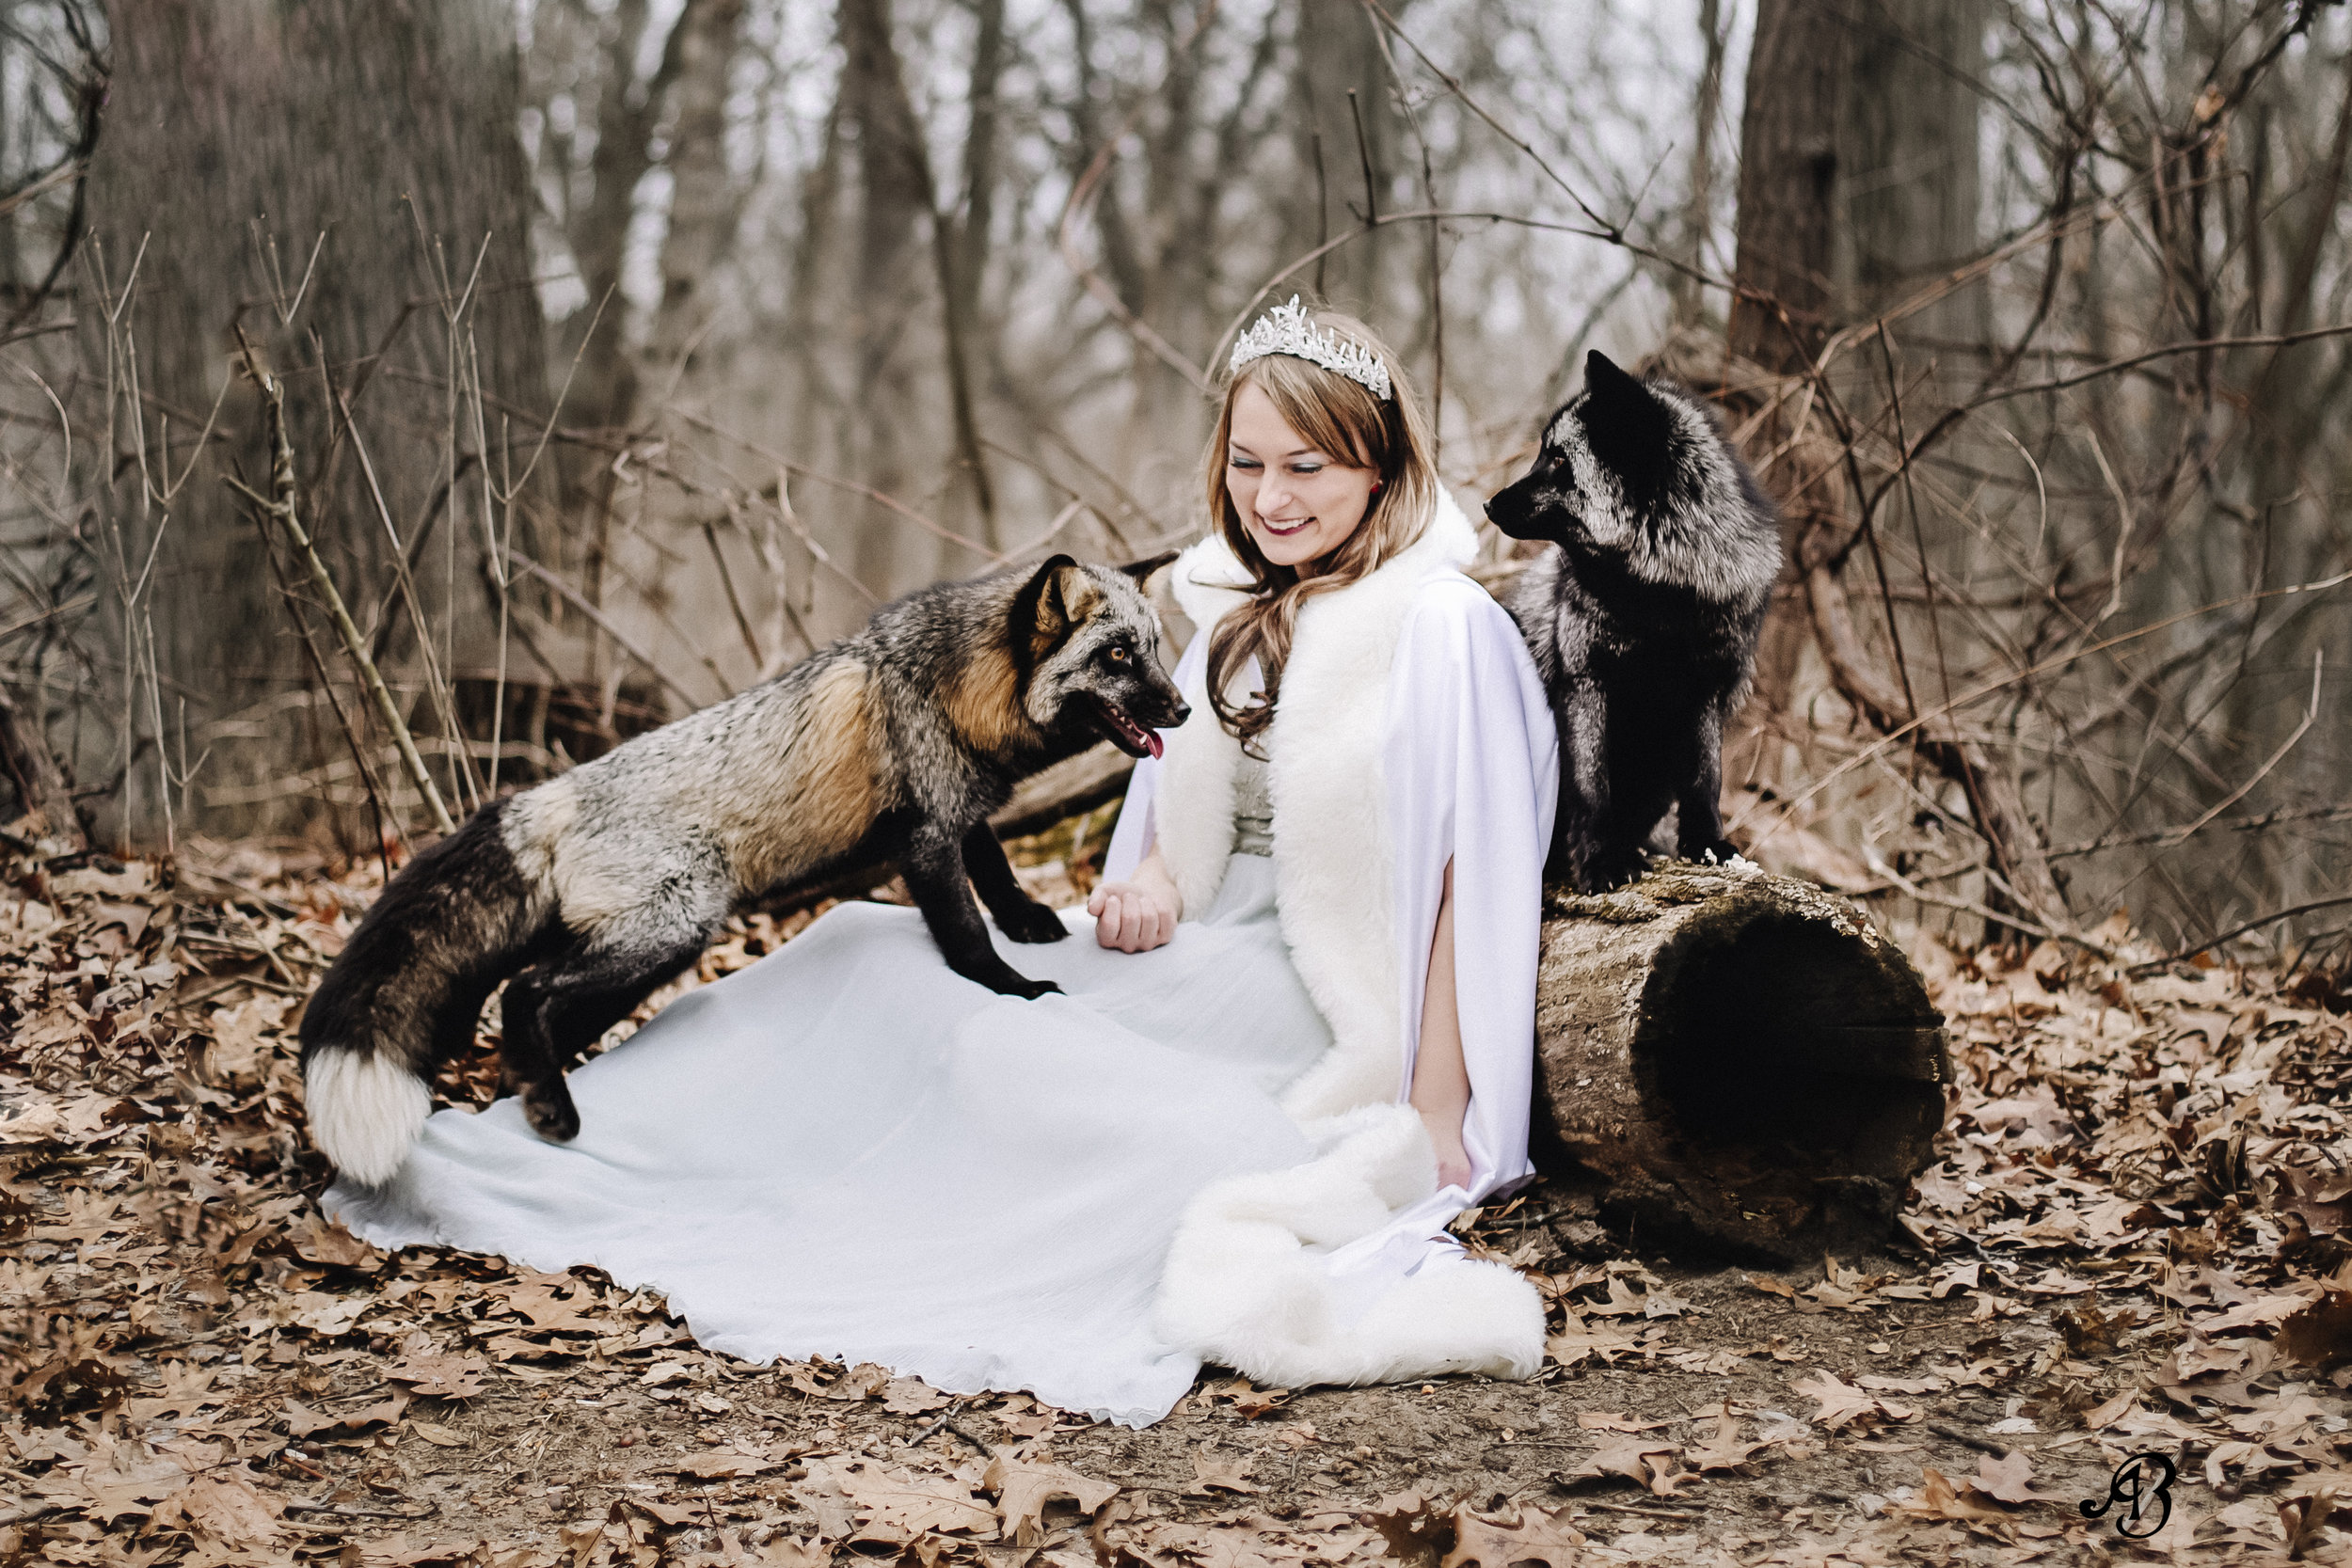 Princess and the Foxes | Photoshoot with Foxes | Animal Encounters | Alyssia Booth's Candid & Studio | Michigan Photographer | Fantasy Photoshoots | www.abcandidstudio.com